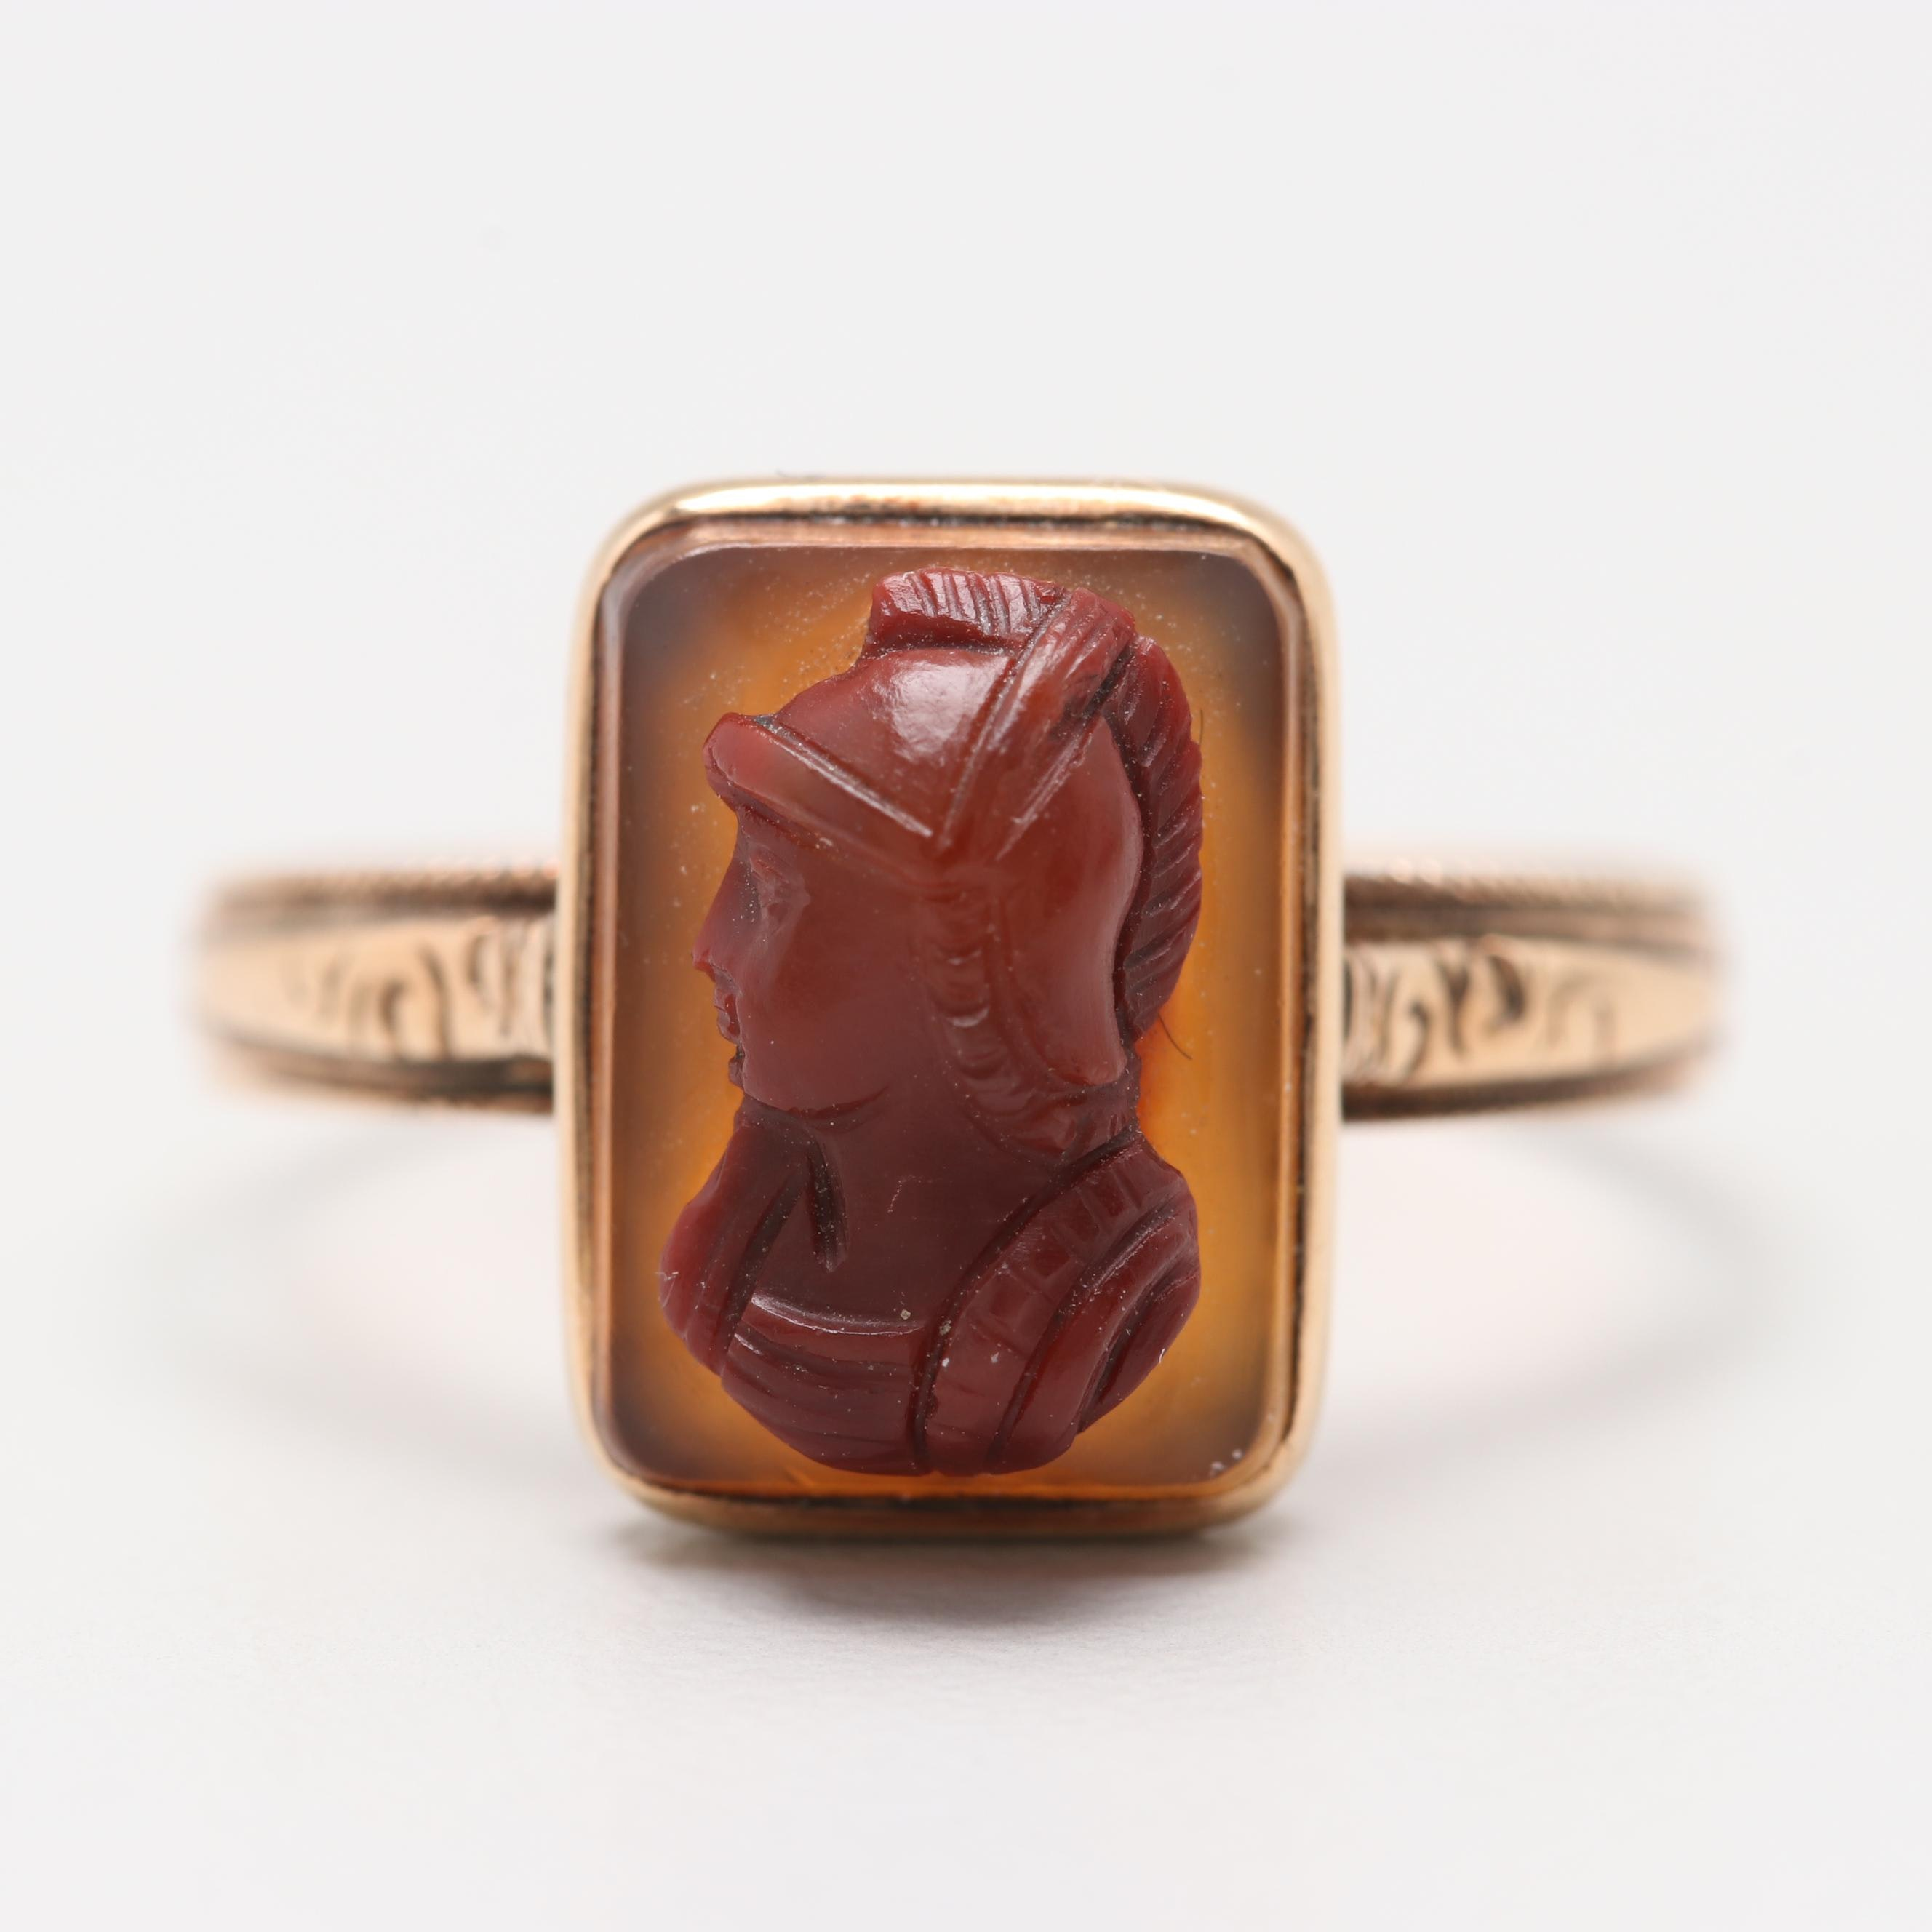 Mid-Victorian, Etruscan Revival 14K Yellow Gold Agate Cameo Ring